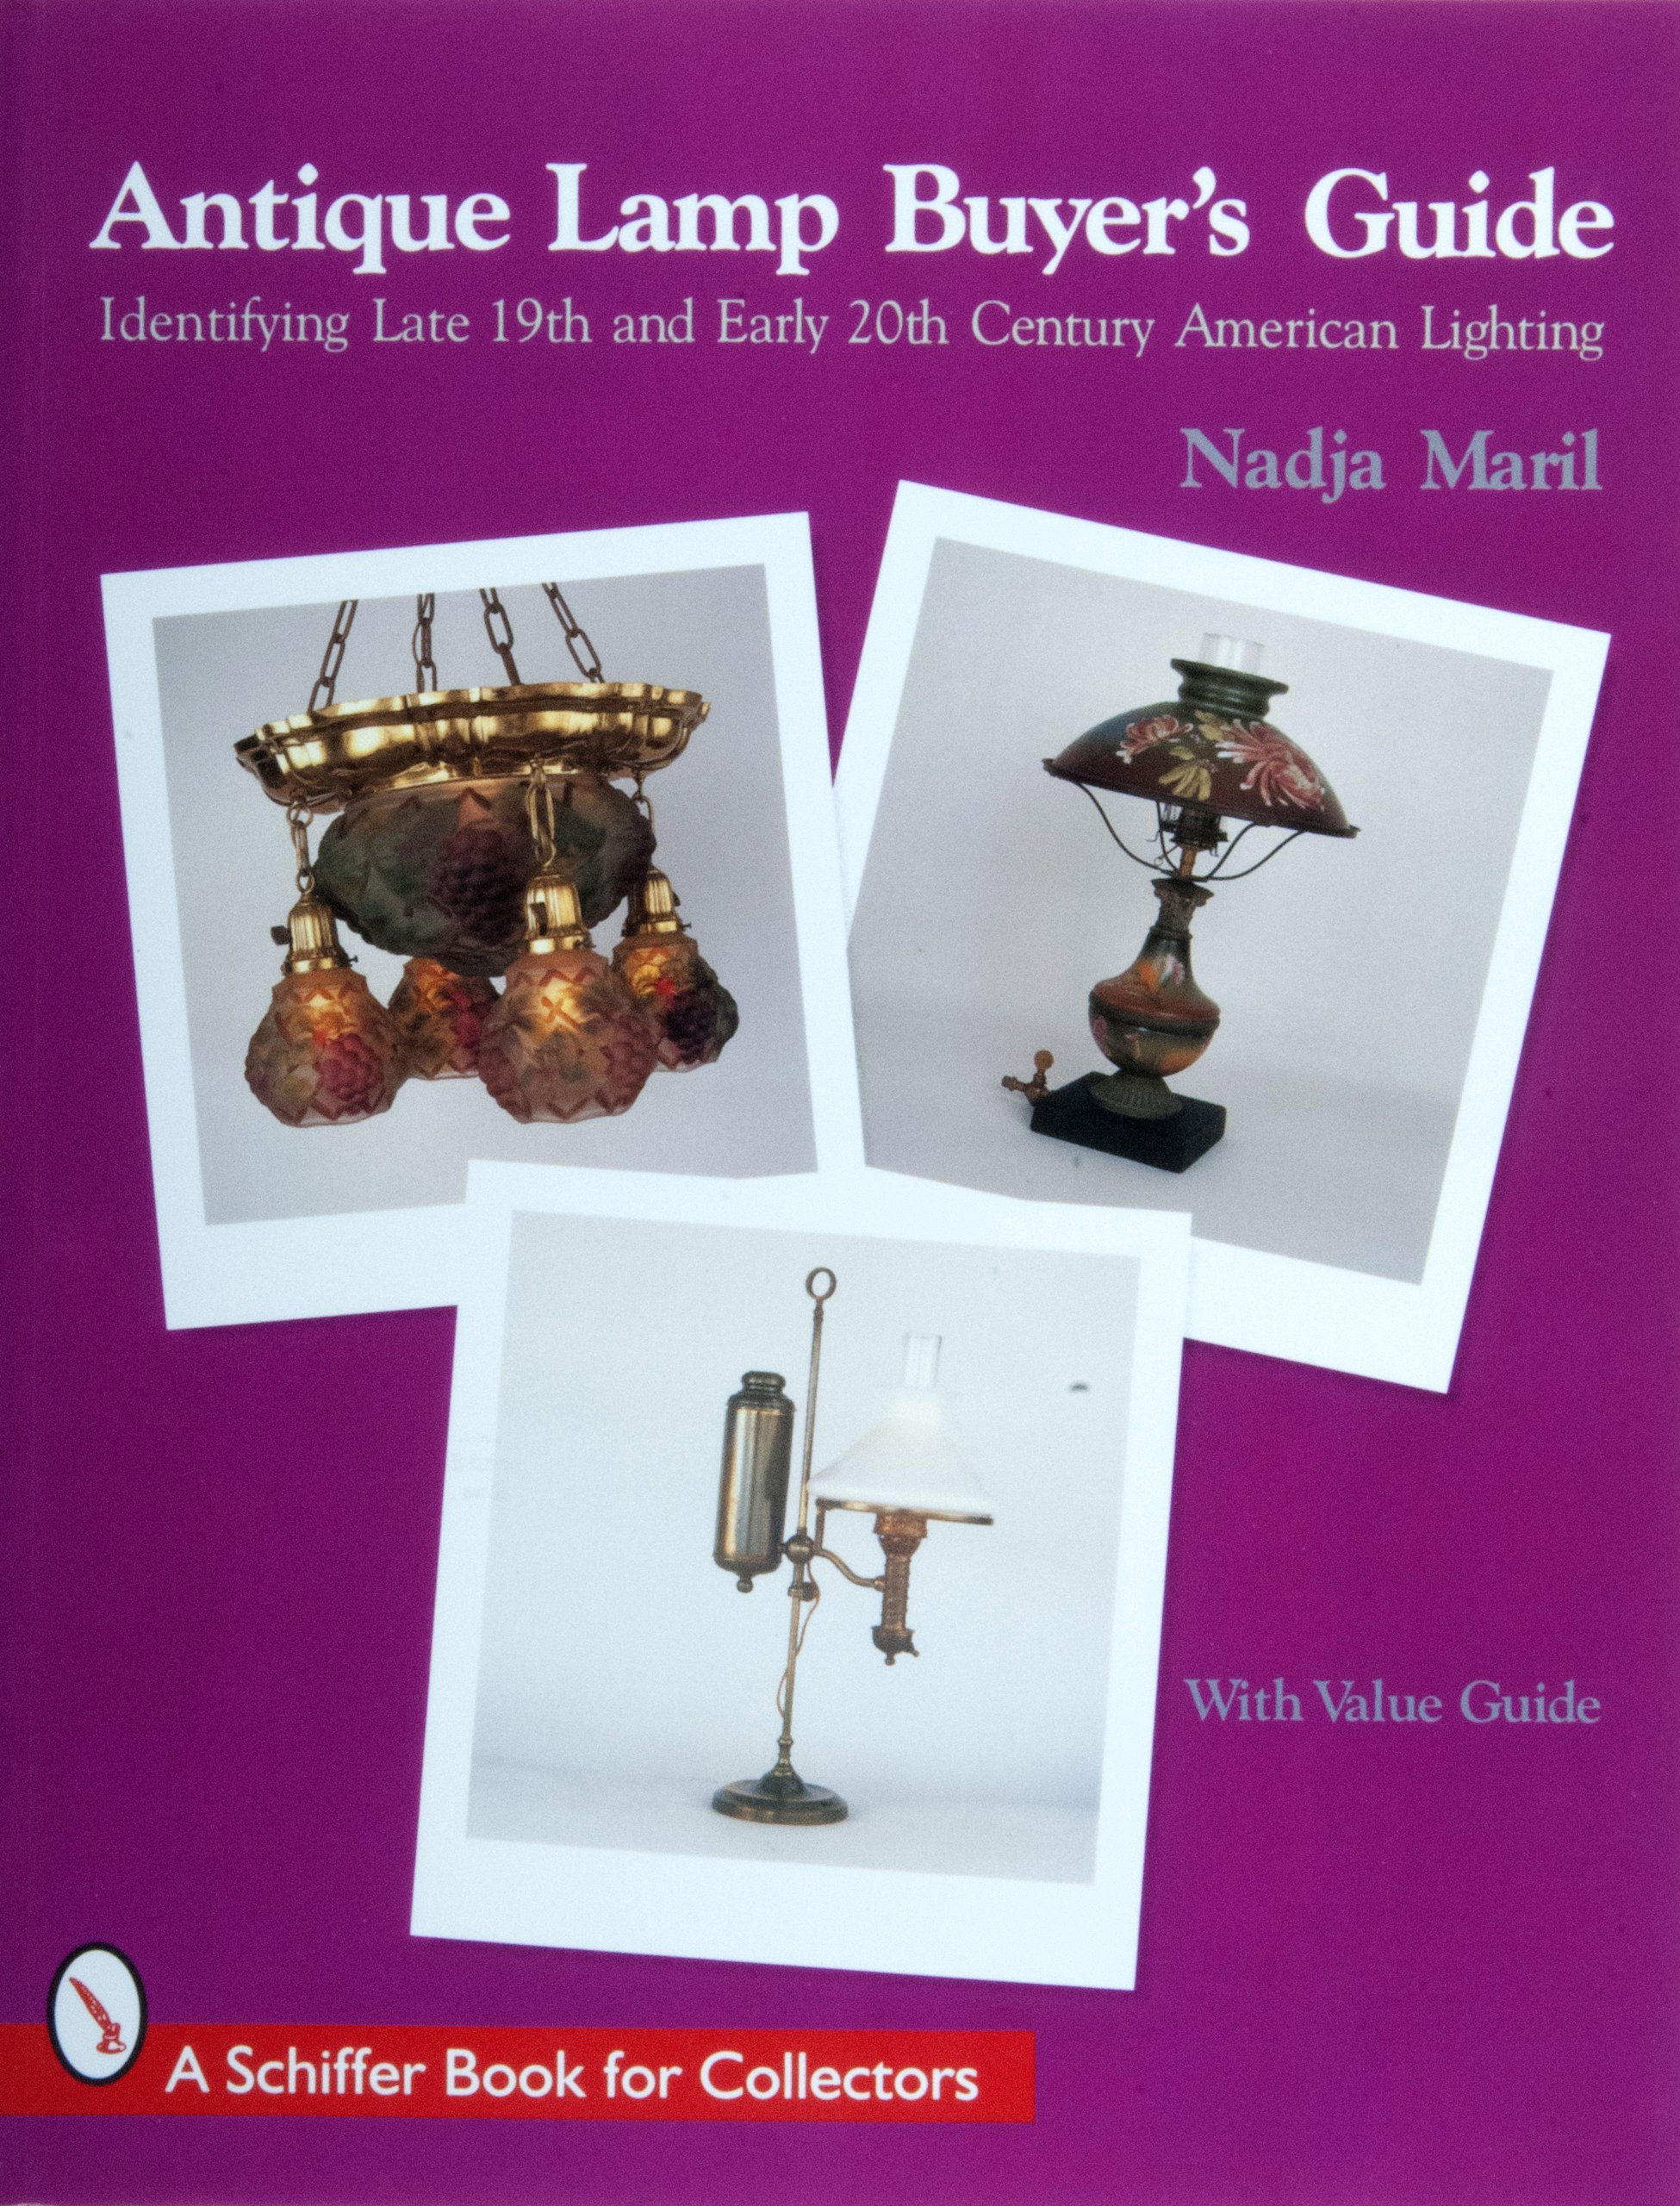 Antique Lamp Buyers Guide: Identifying Late 19th and Early 20th Century American Lighting (with Value Guide) (Schiffer Book for Collectors)